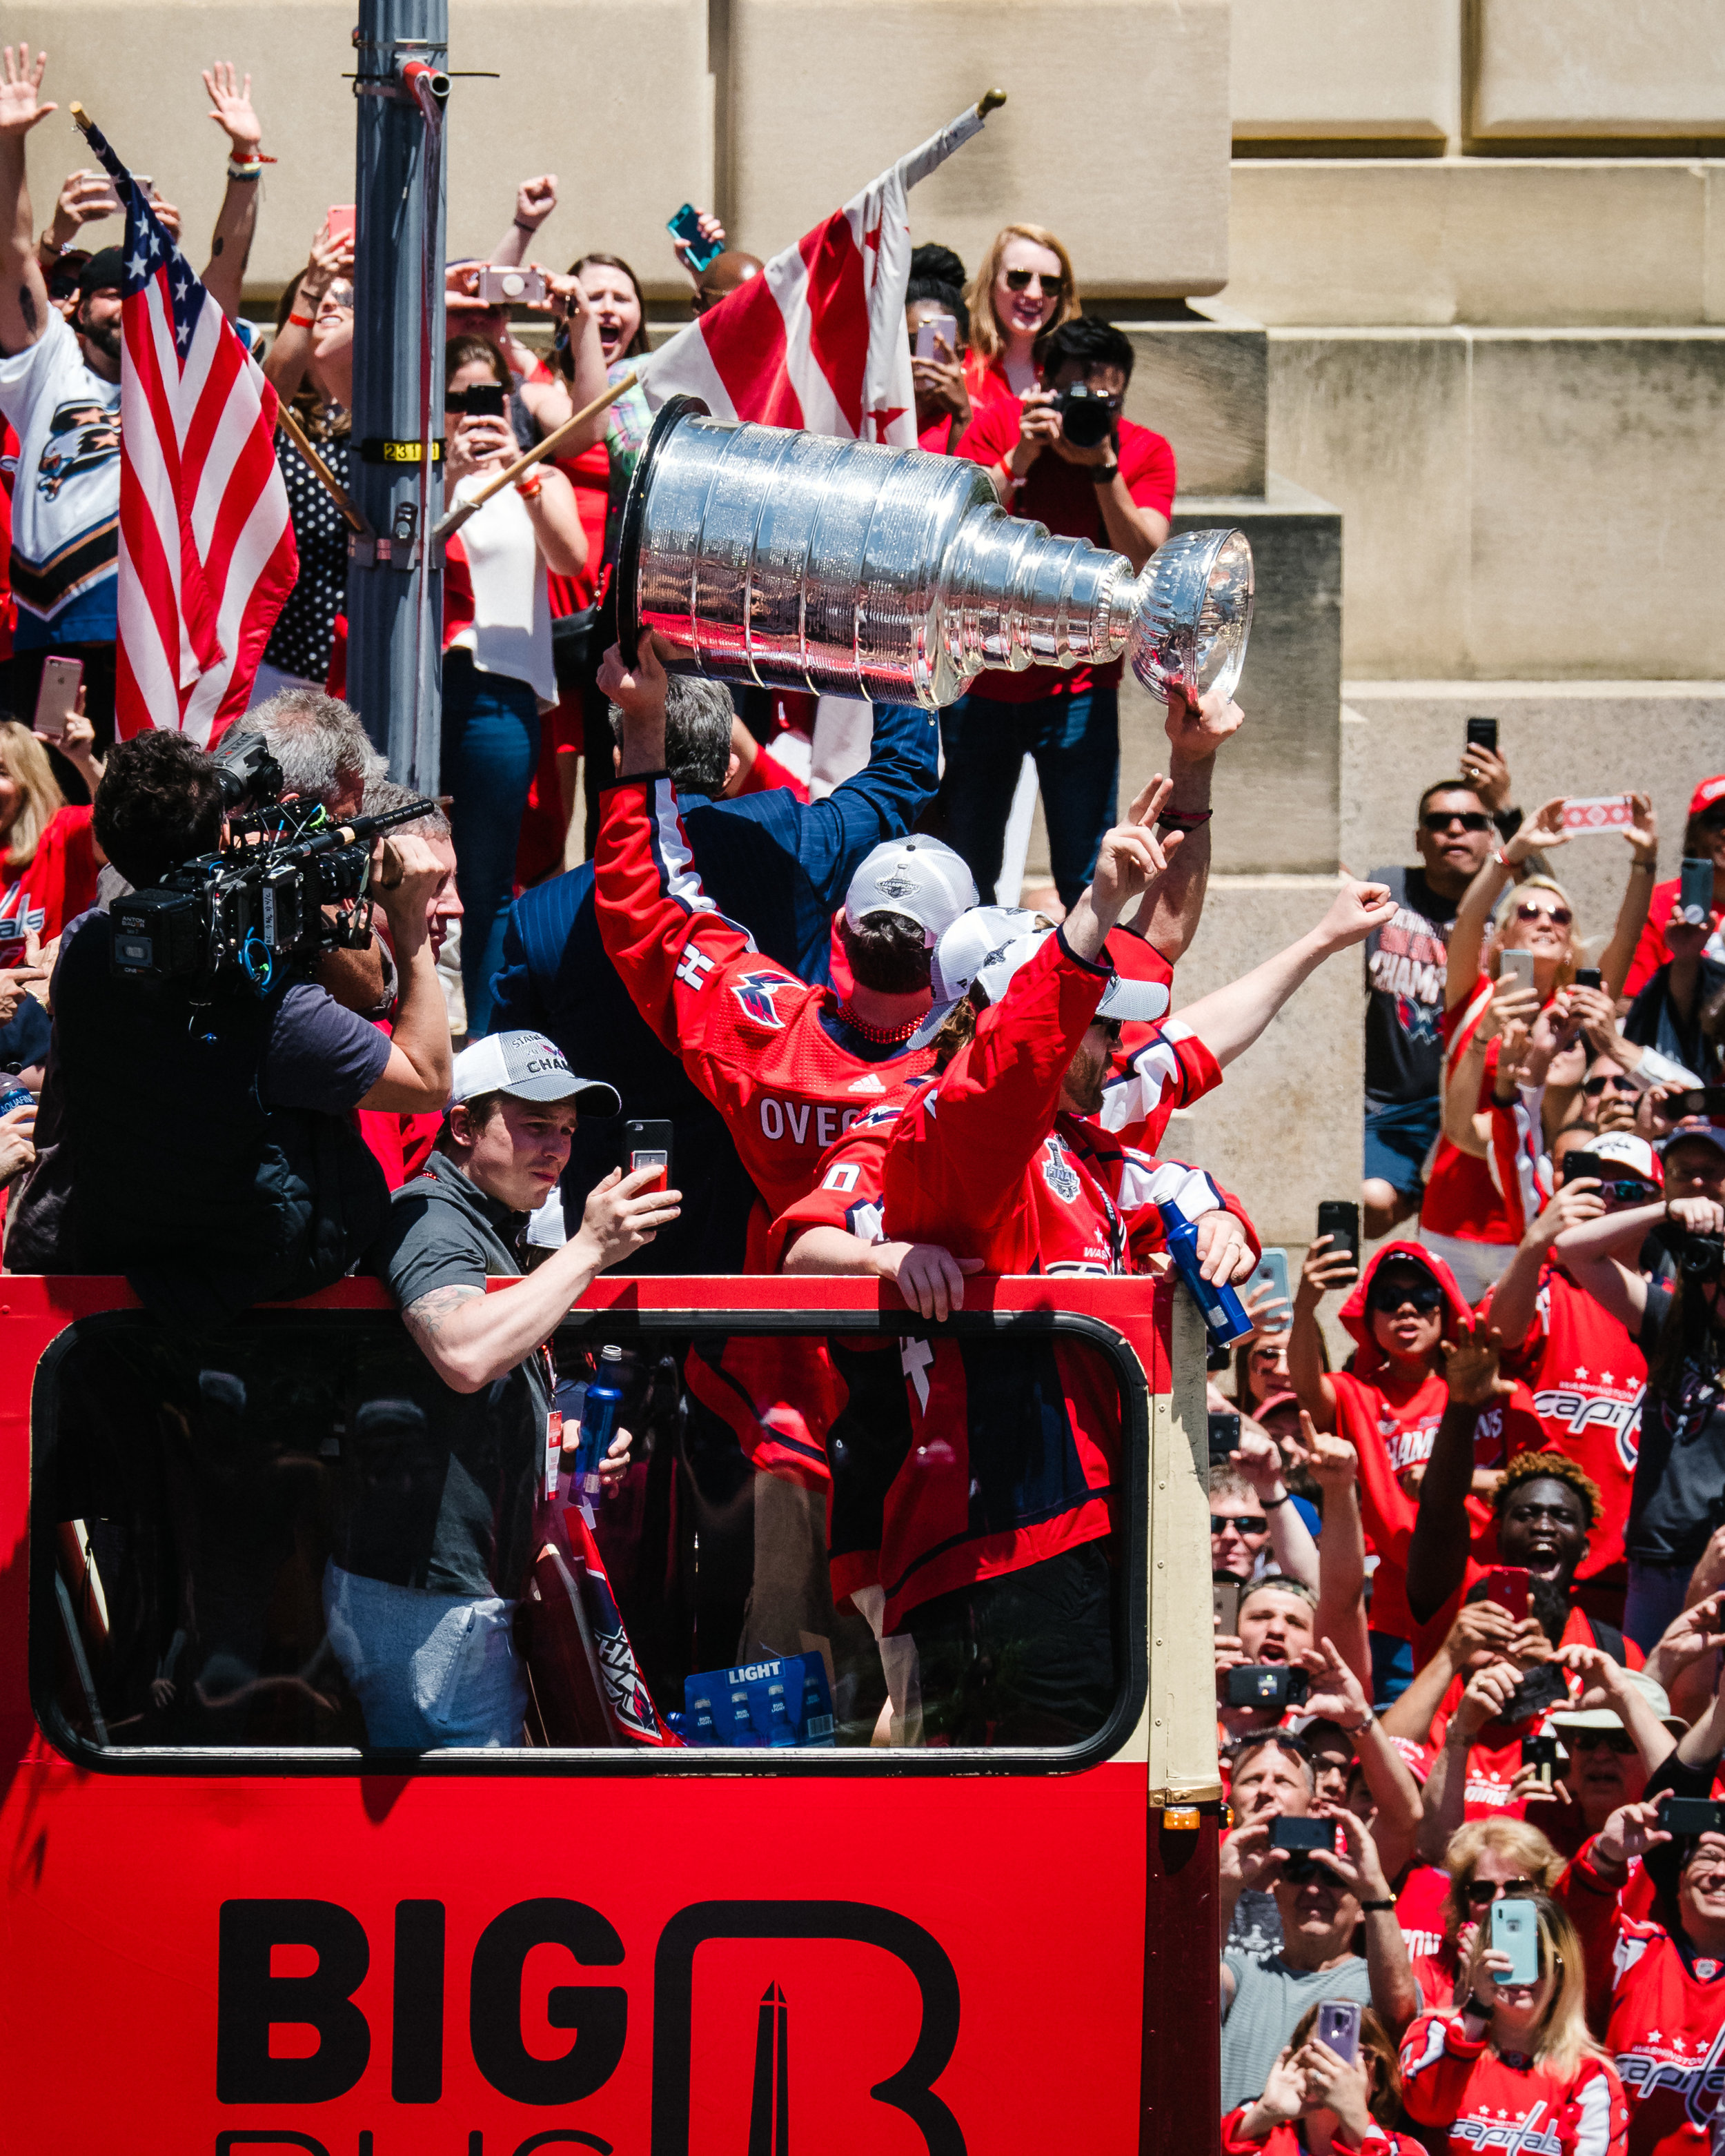 To the delight of throngs of Capitals fans, Alex Ovechkin hoists the Stanley Cup.